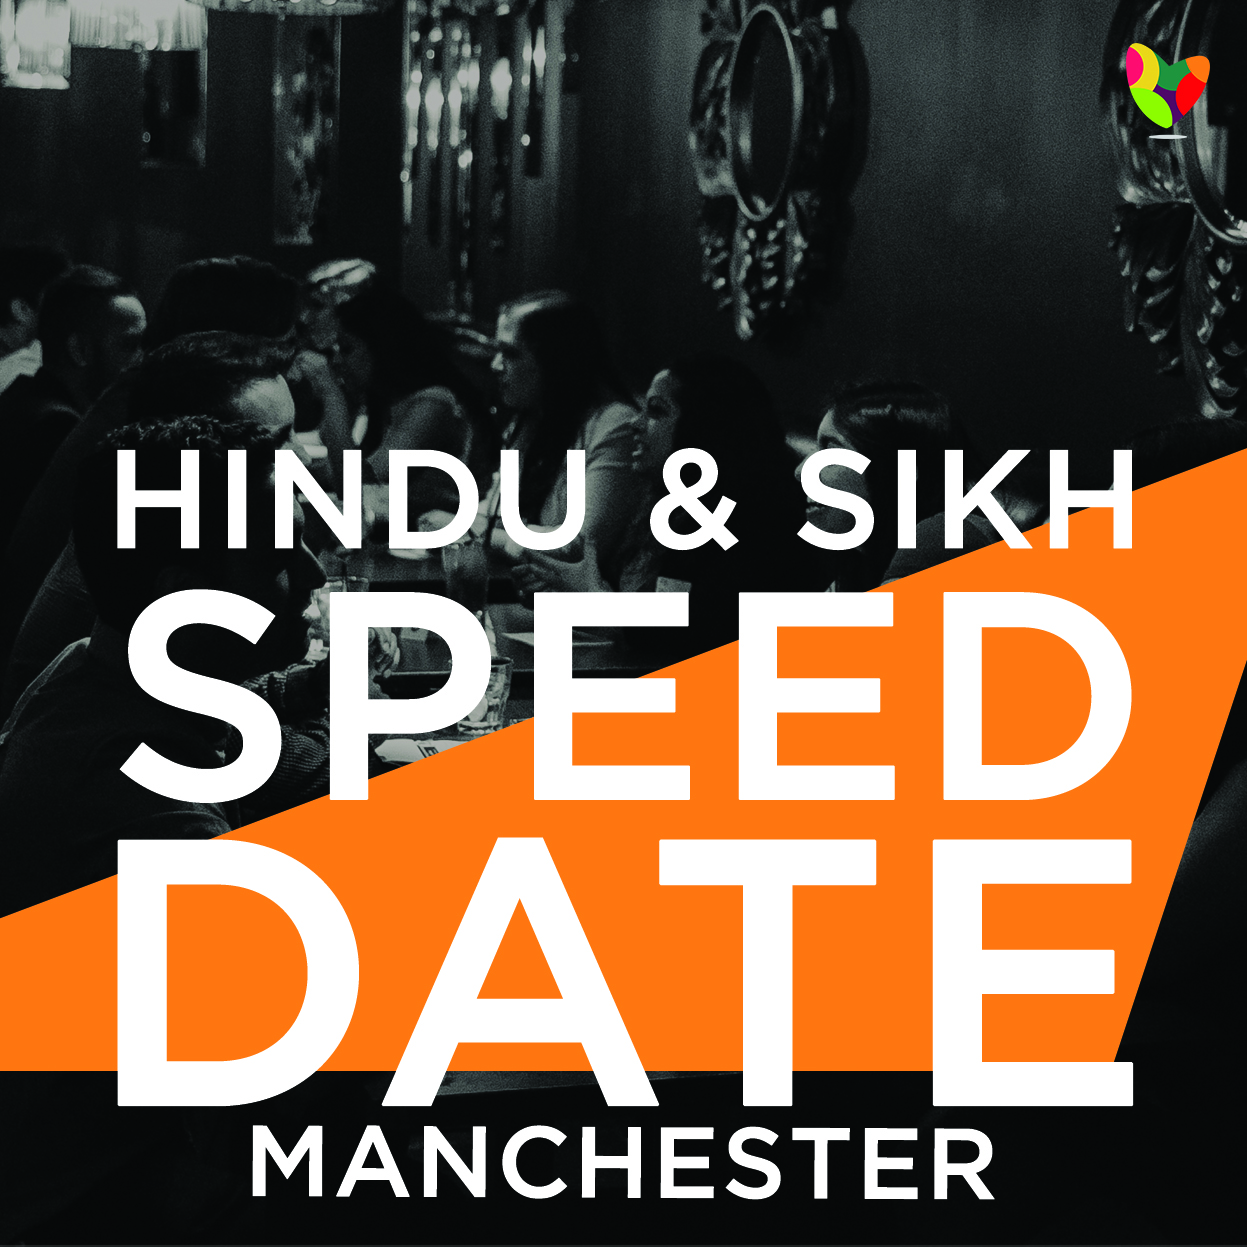 Hindu And Sikh Speed Hookup Manchester